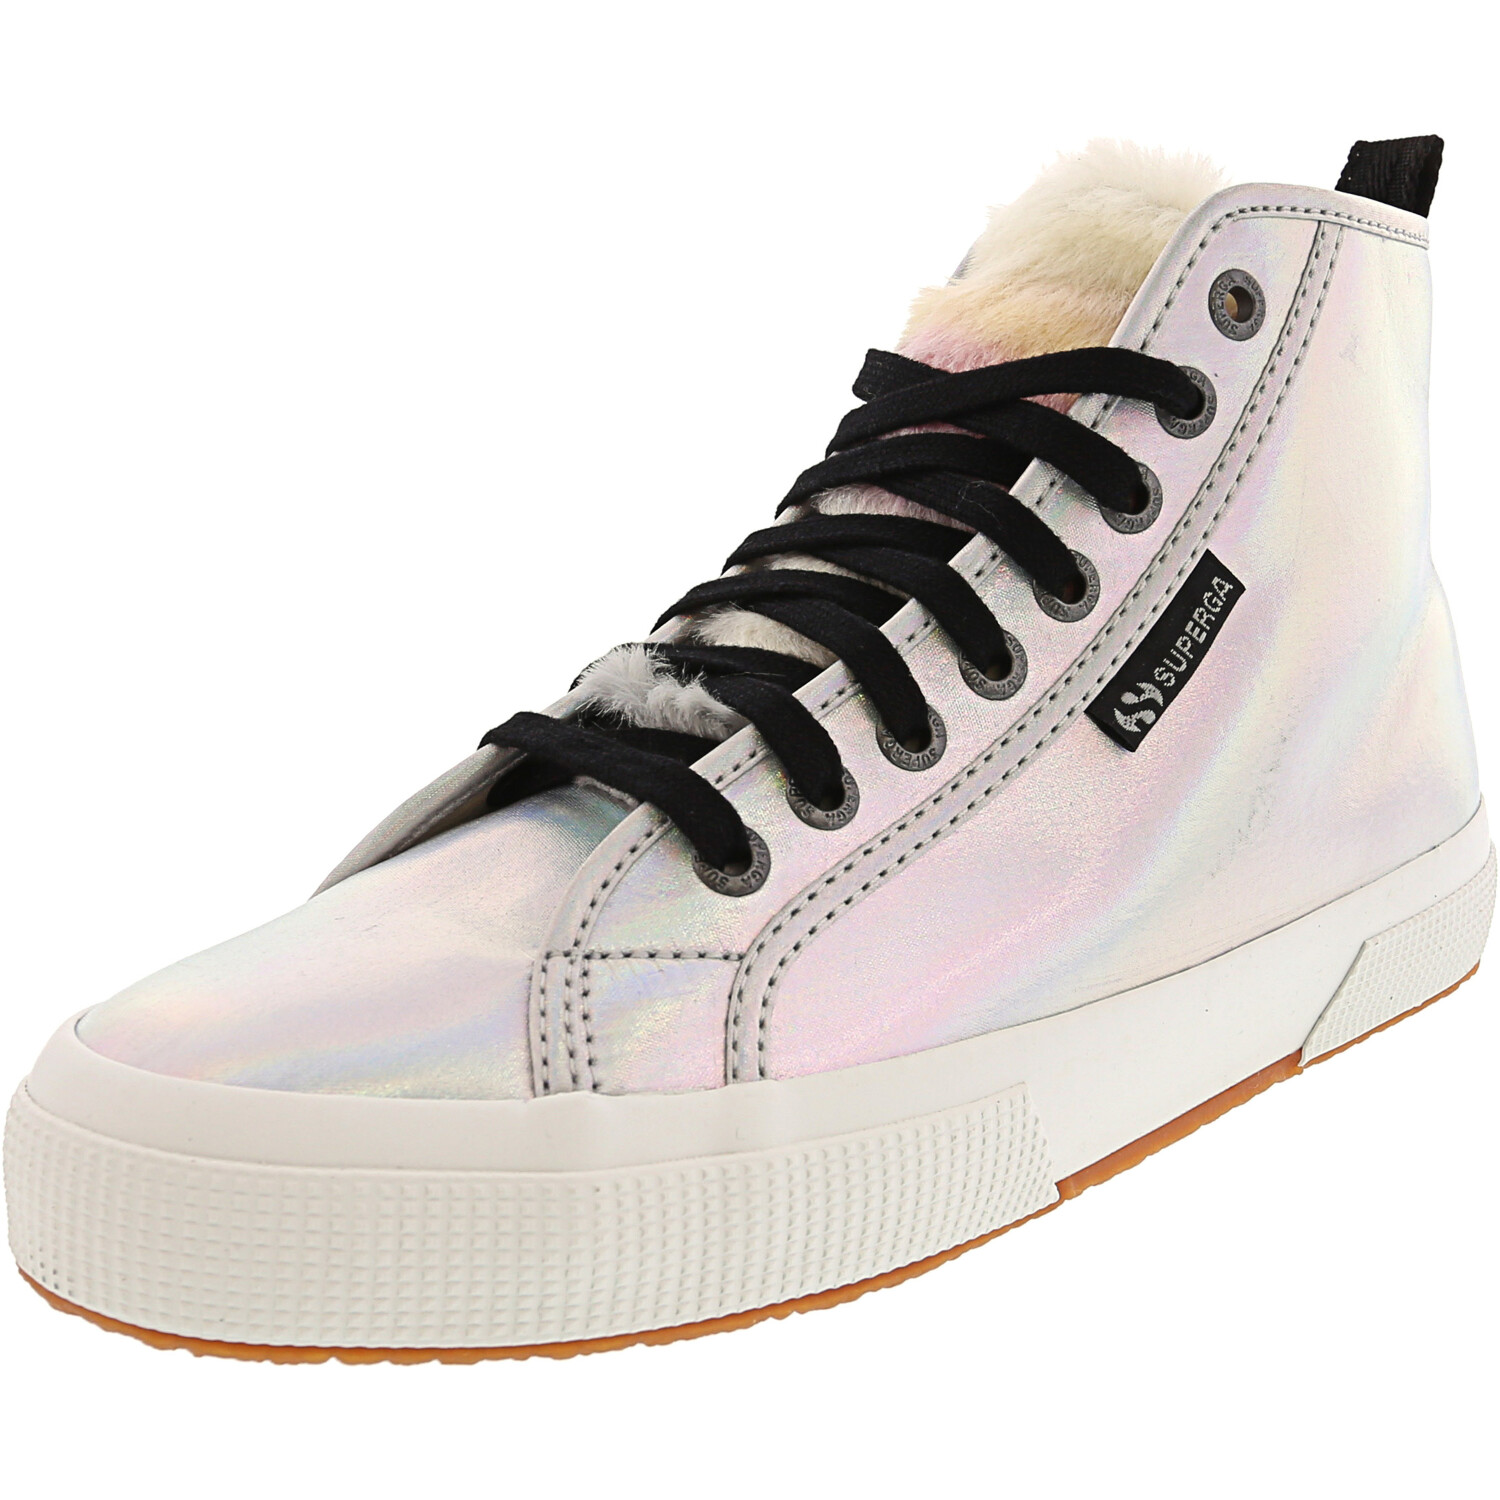 Superga 2795-Iridescentnylonfurw Iridescent High-Top Nylon Sneaker - 6M / 4.5M